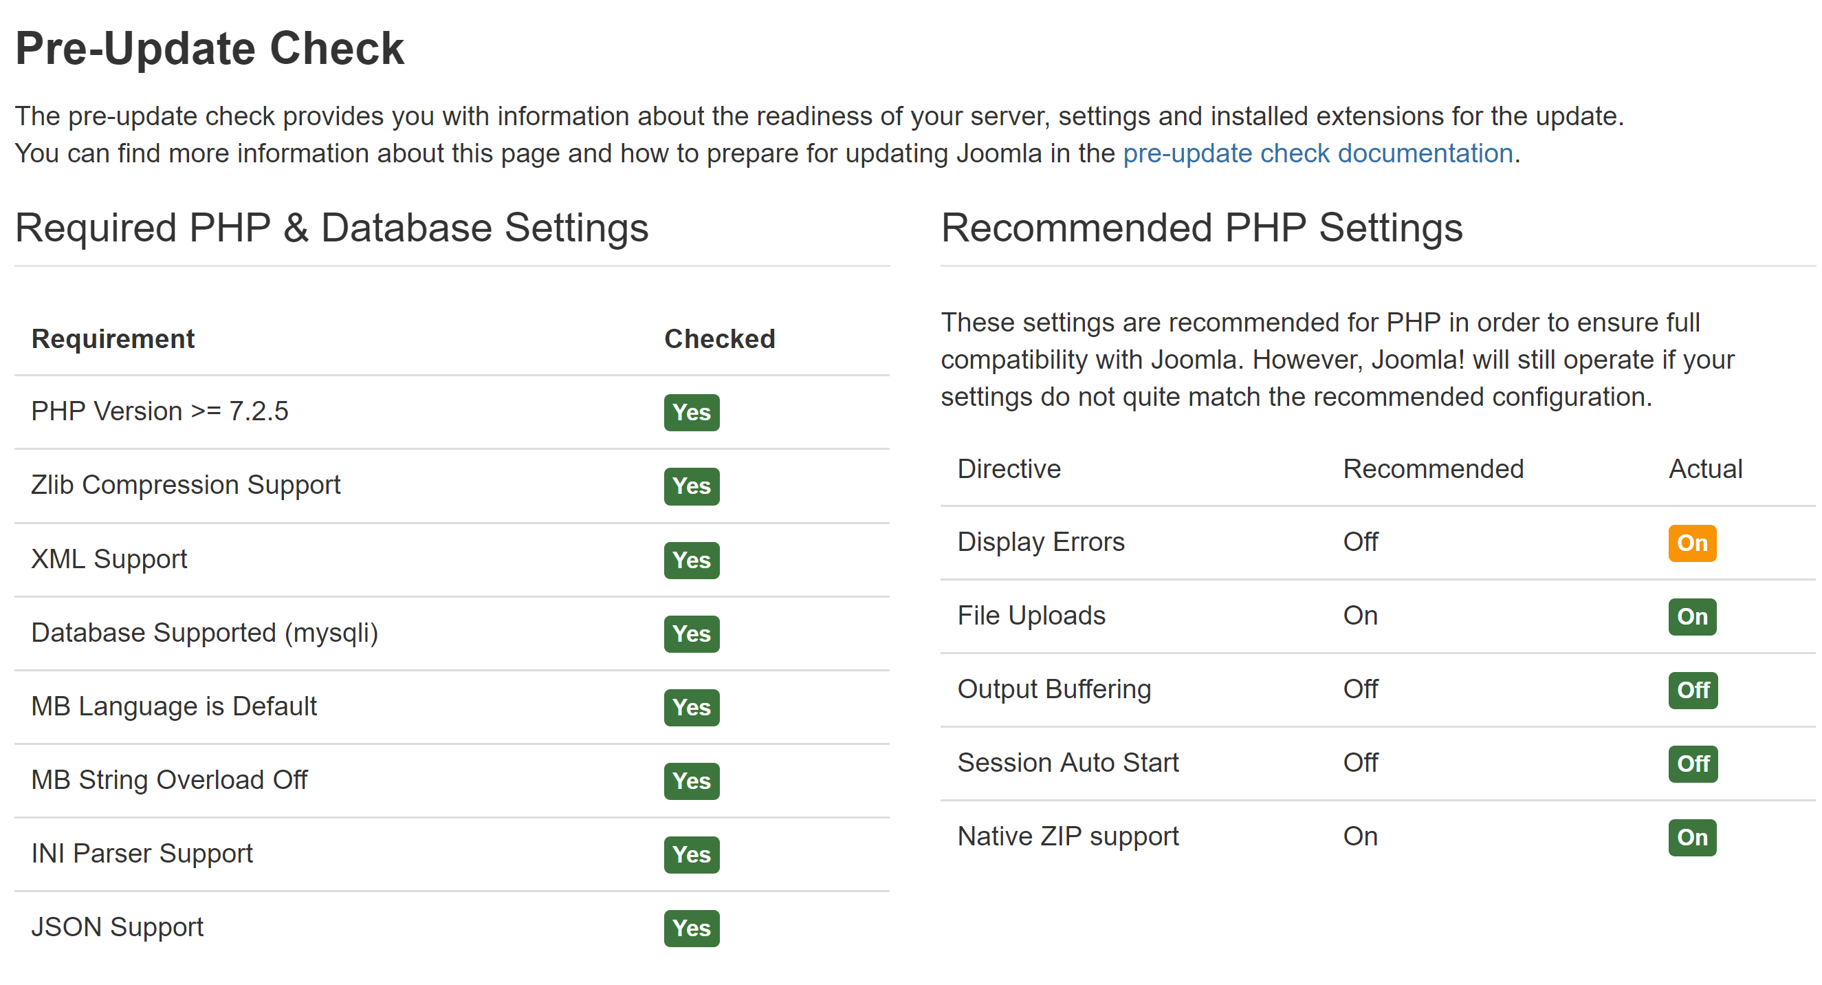 Required PHP and Database Settings portion of the Pre-Update Check Component